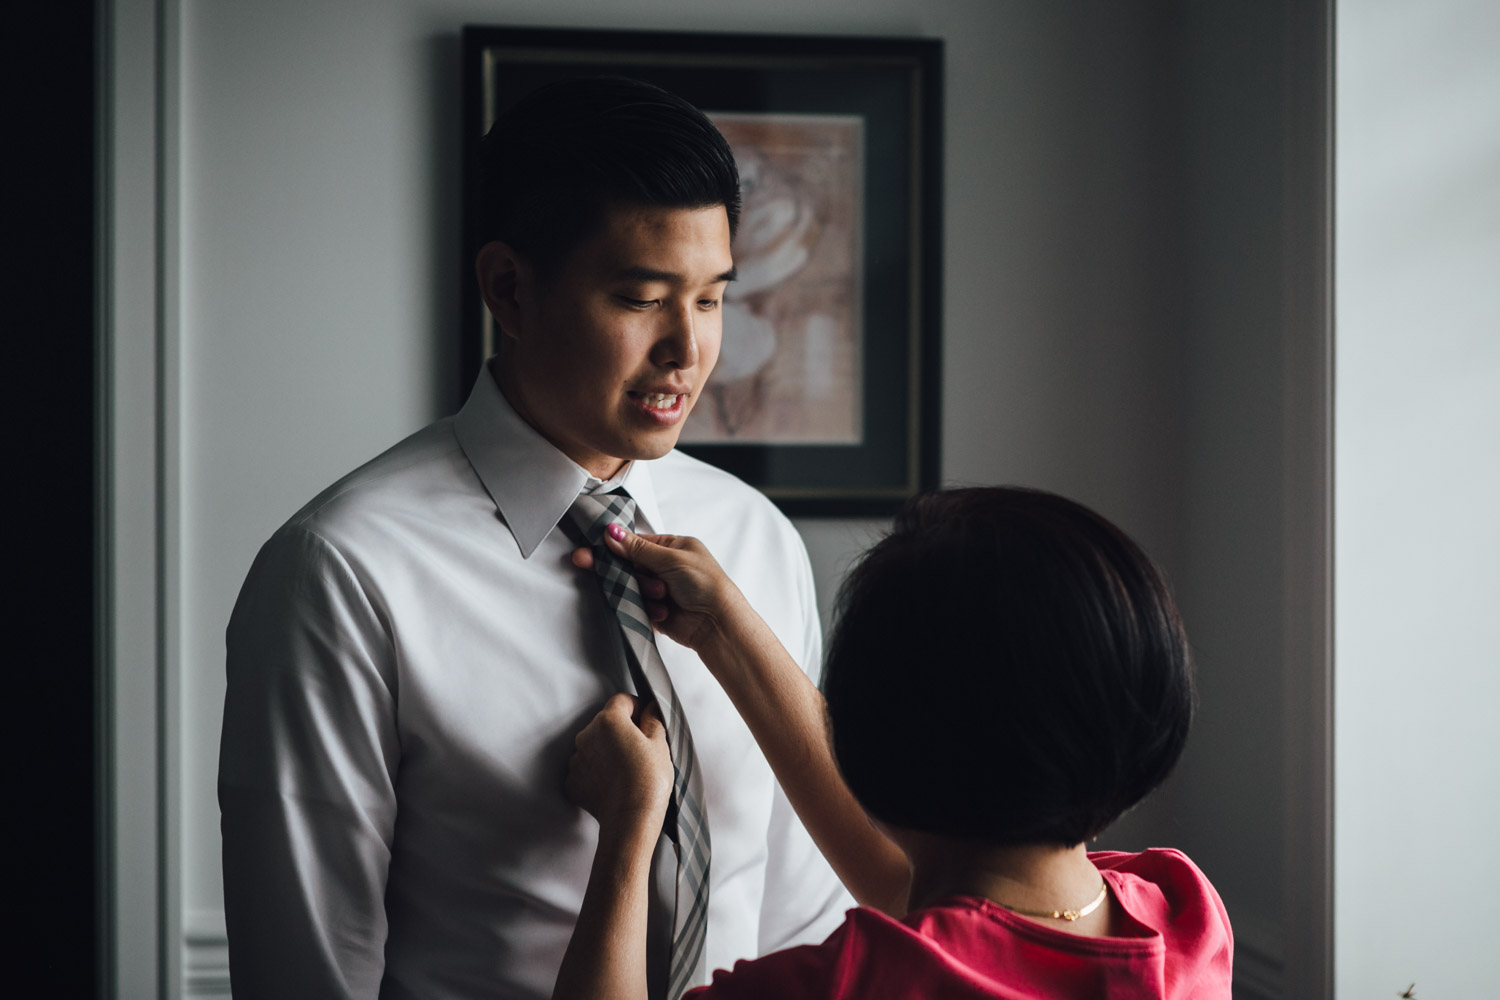 groom getting ready for wedding photography in vancouver bc